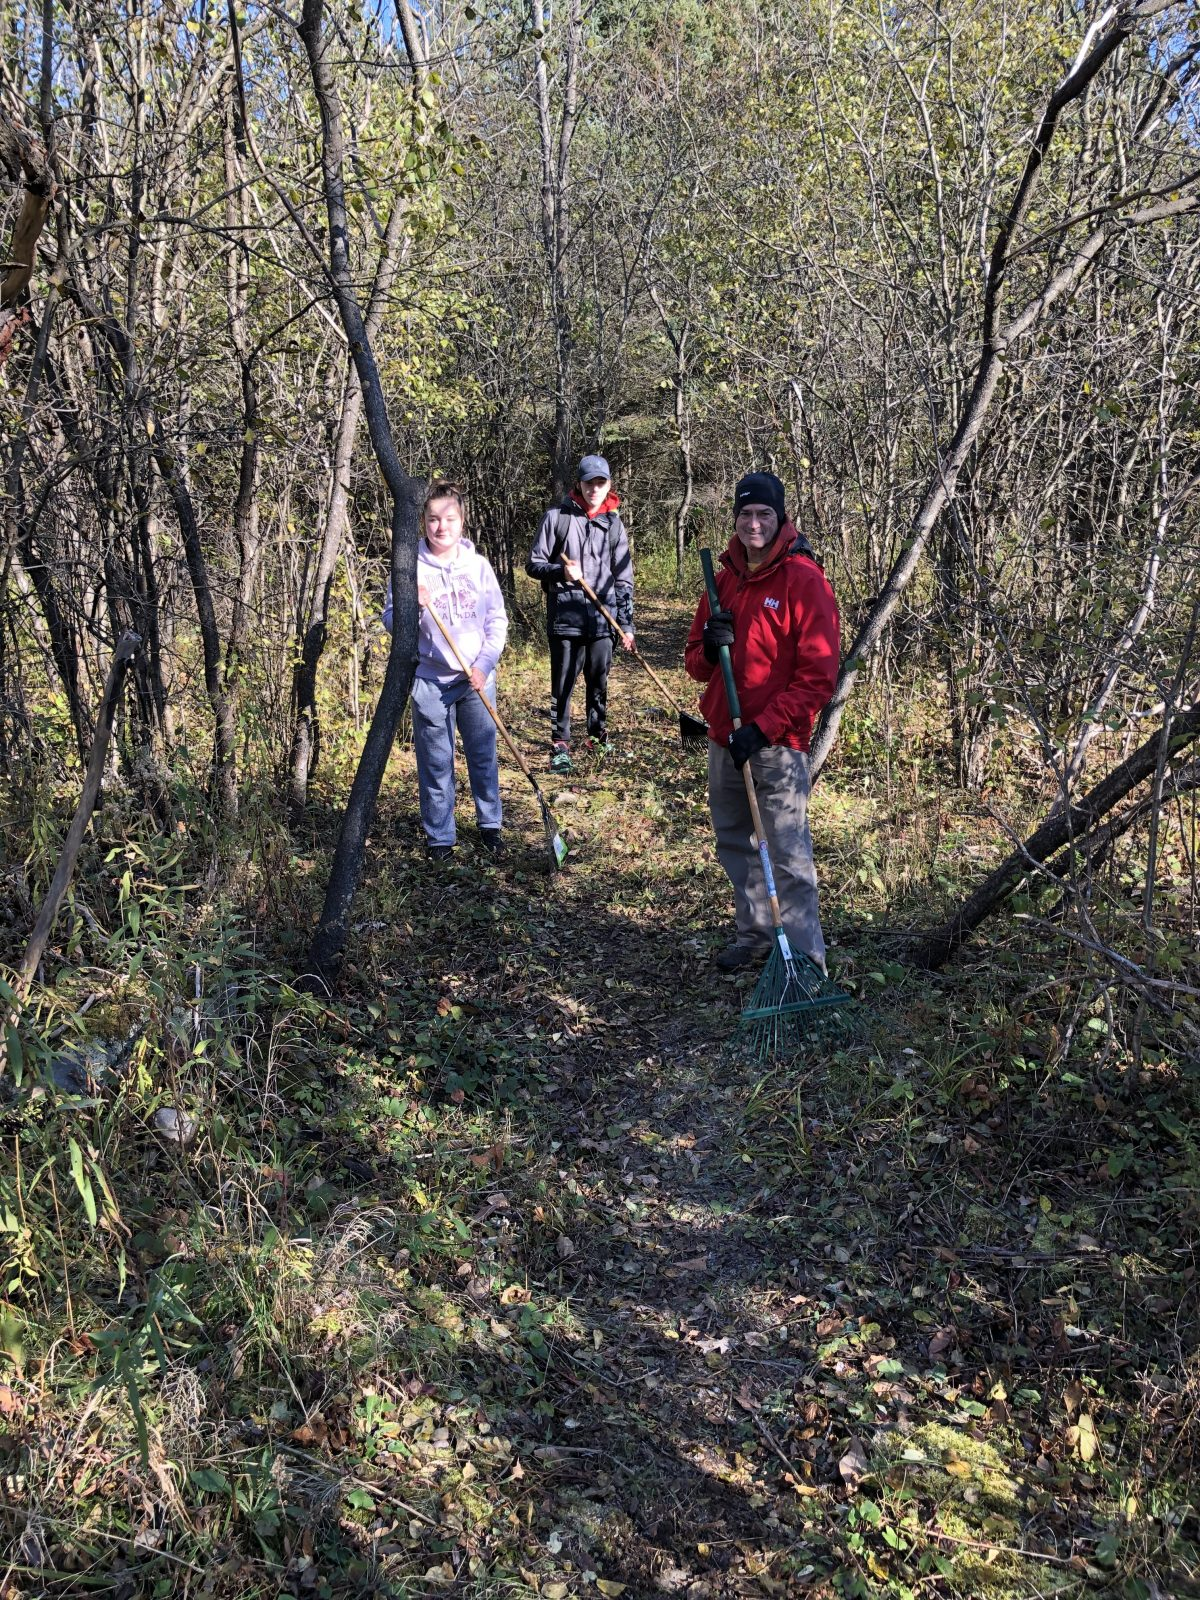 Clean-up day at Summerstown Trails